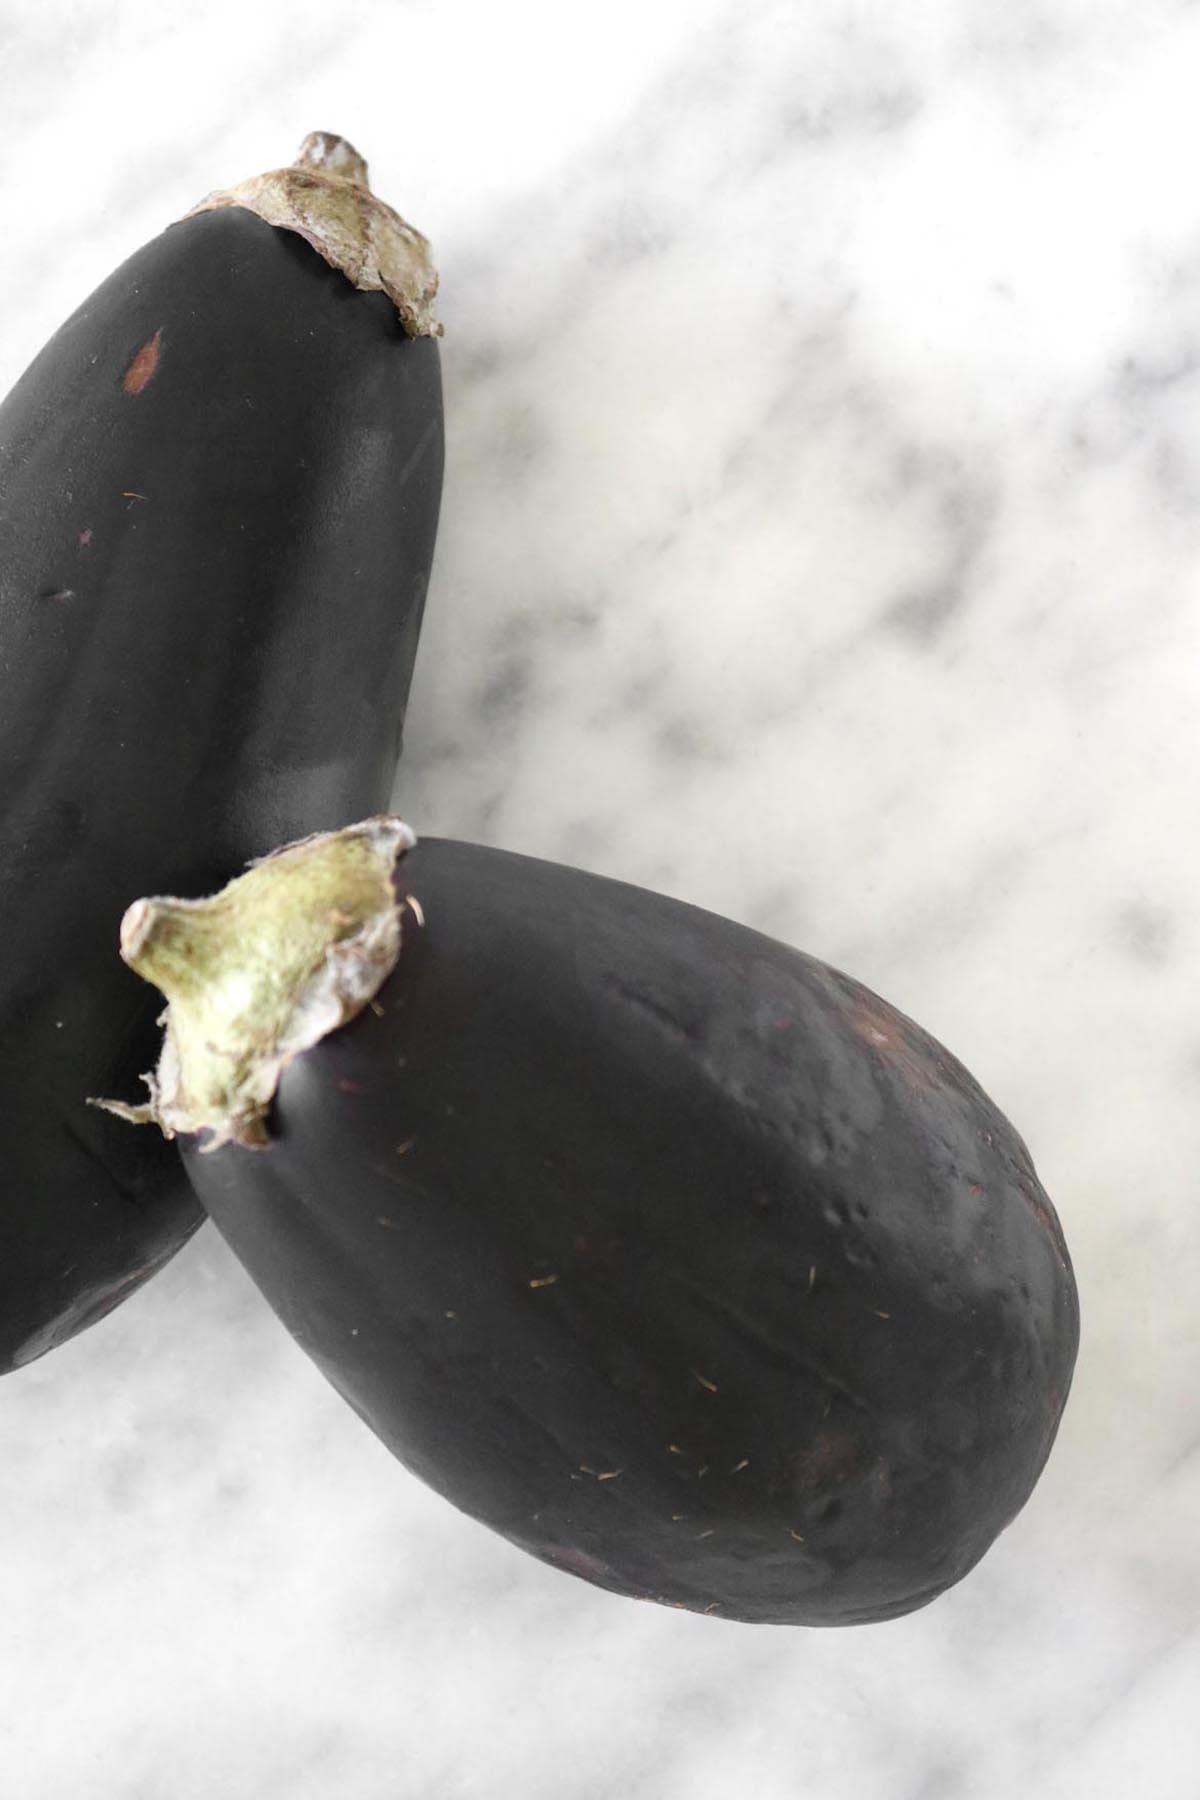 eggplant on the table top